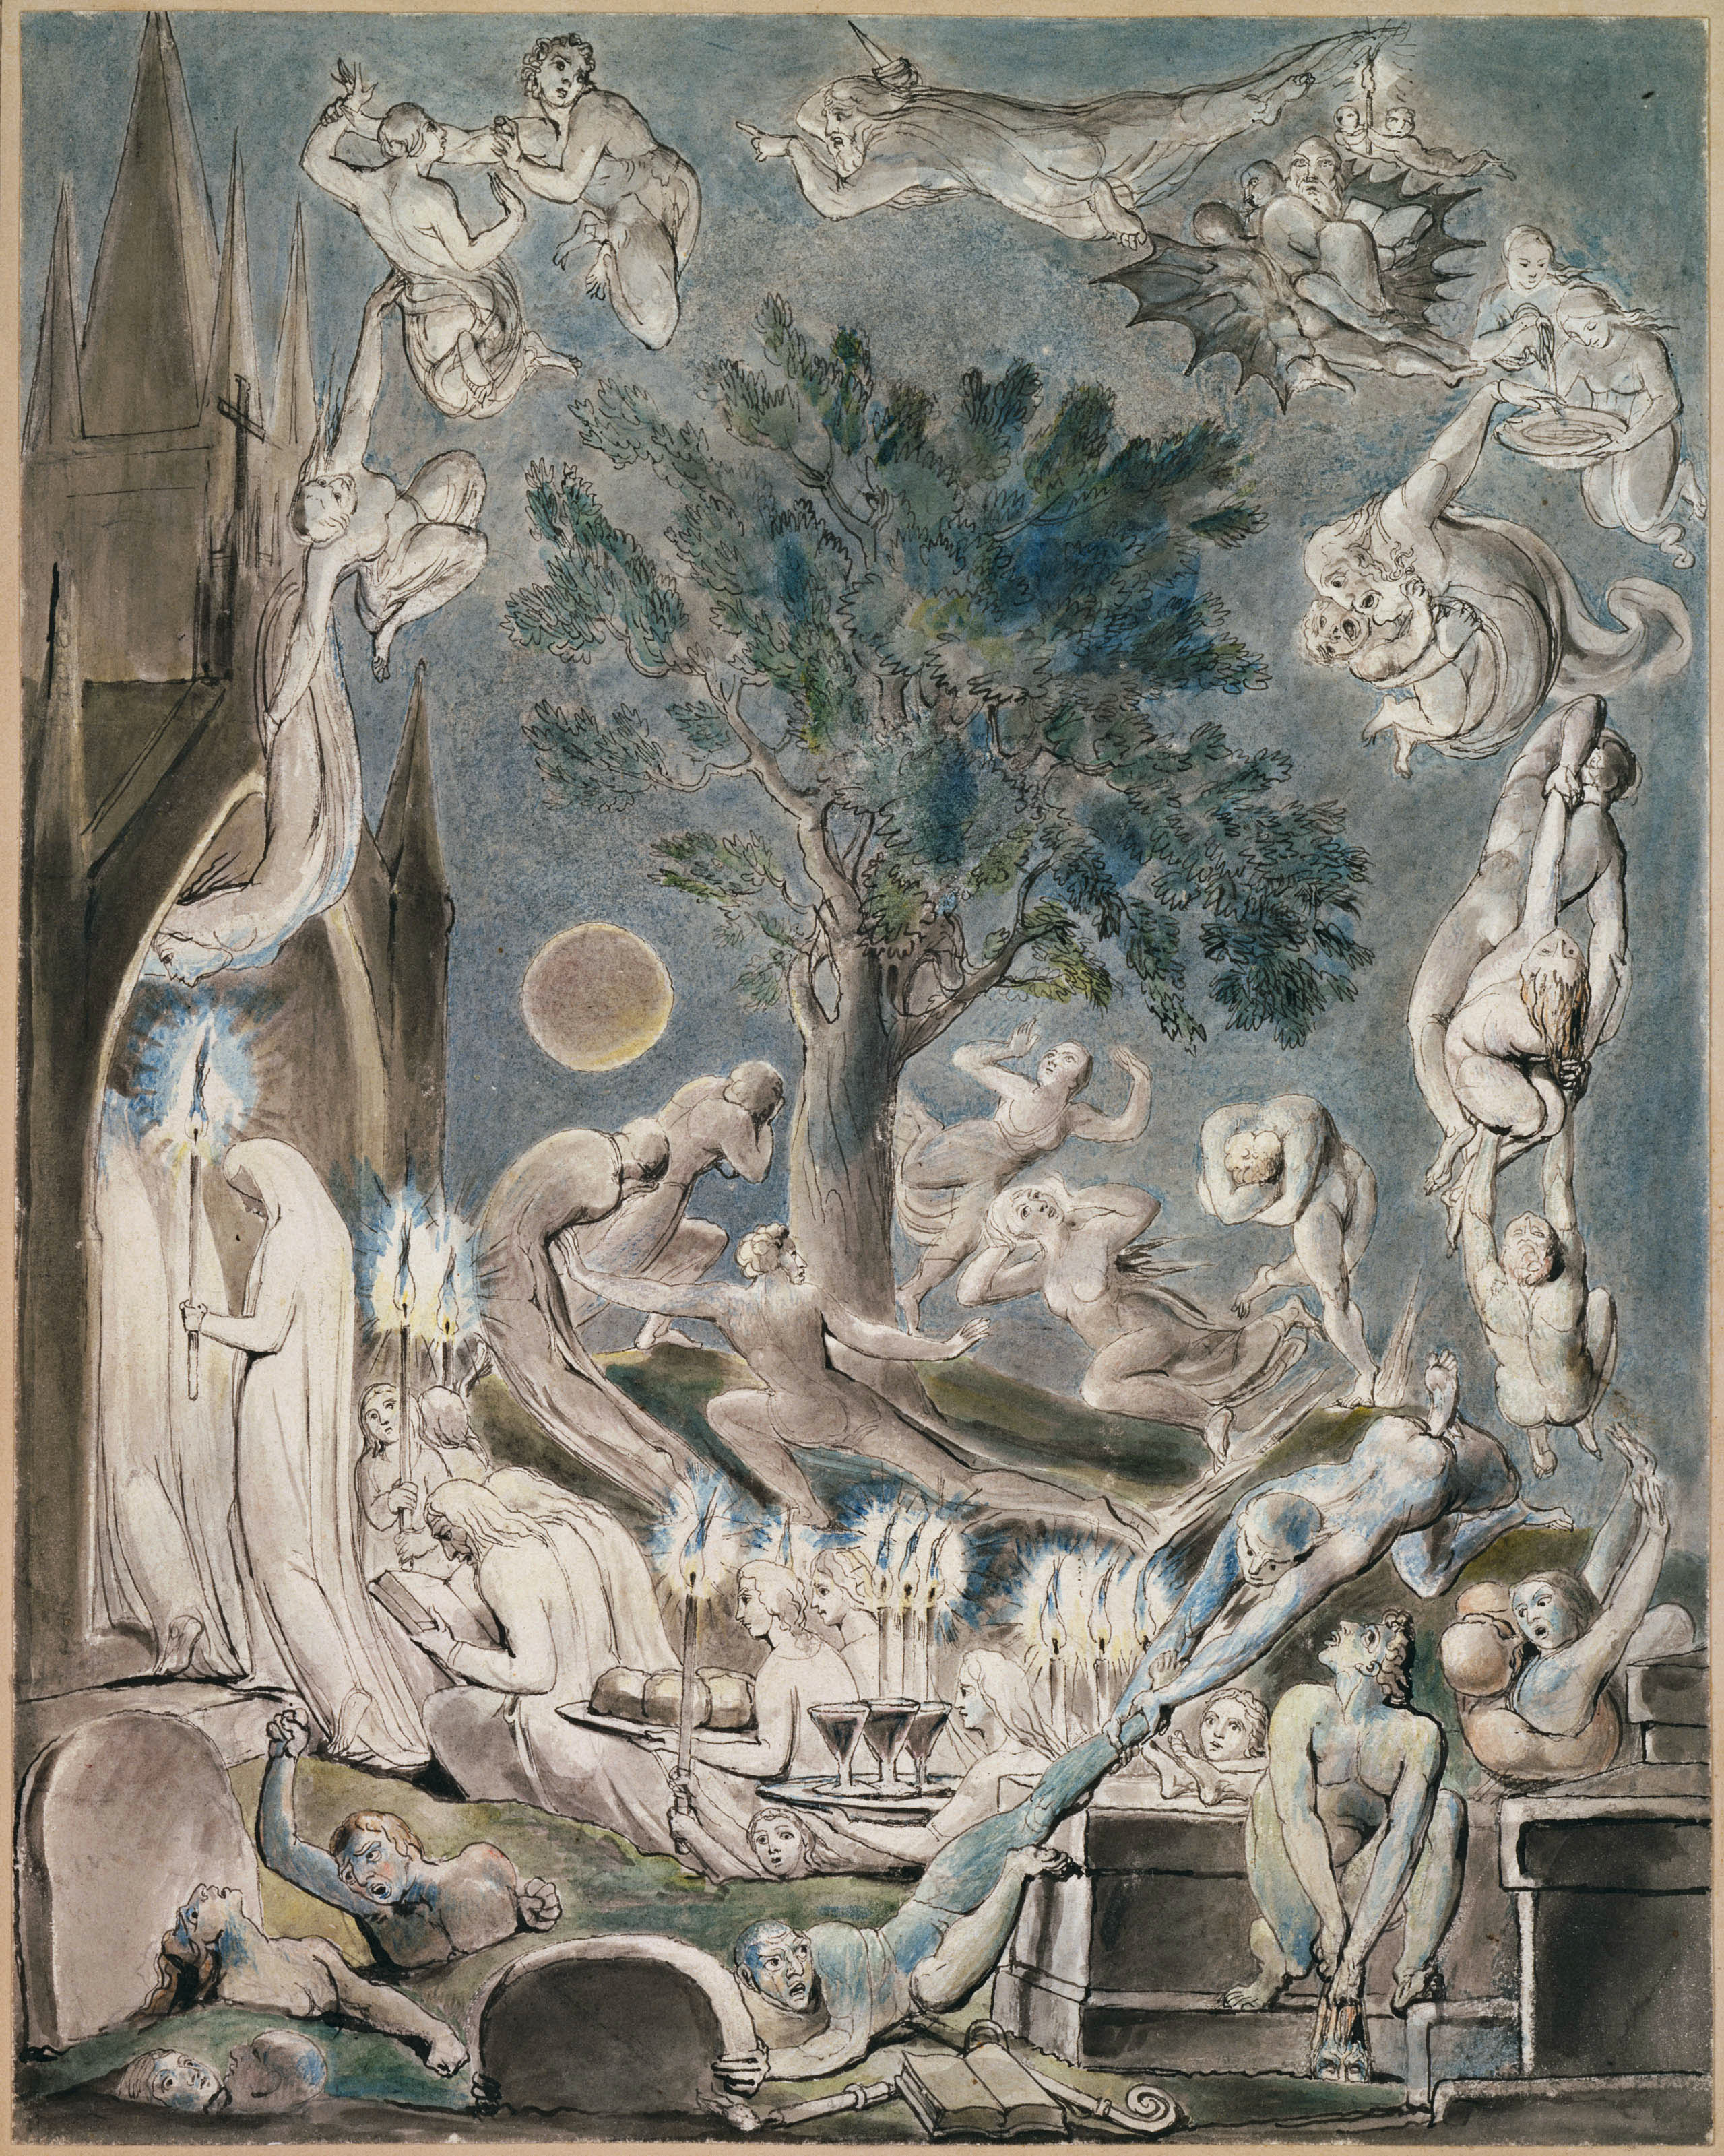 The Good Old Man Dying The Grave William Blake Engravings Fine Art Print